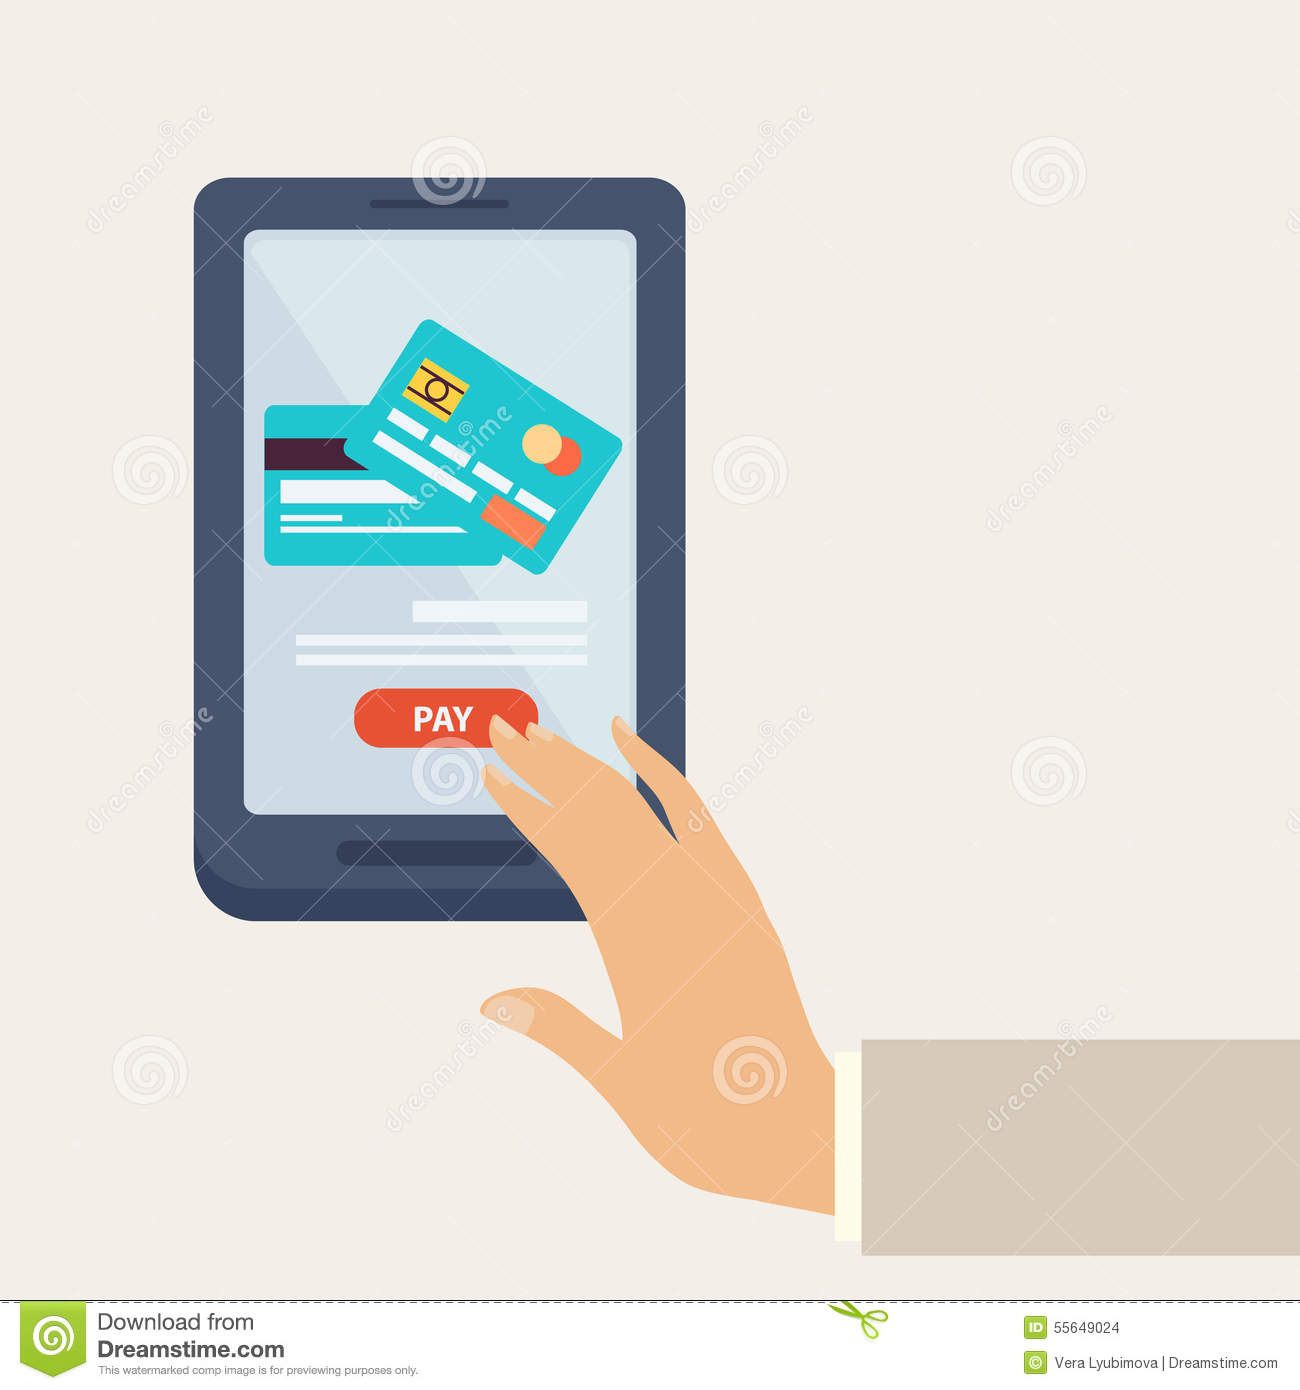 Buy modafinil online credit card